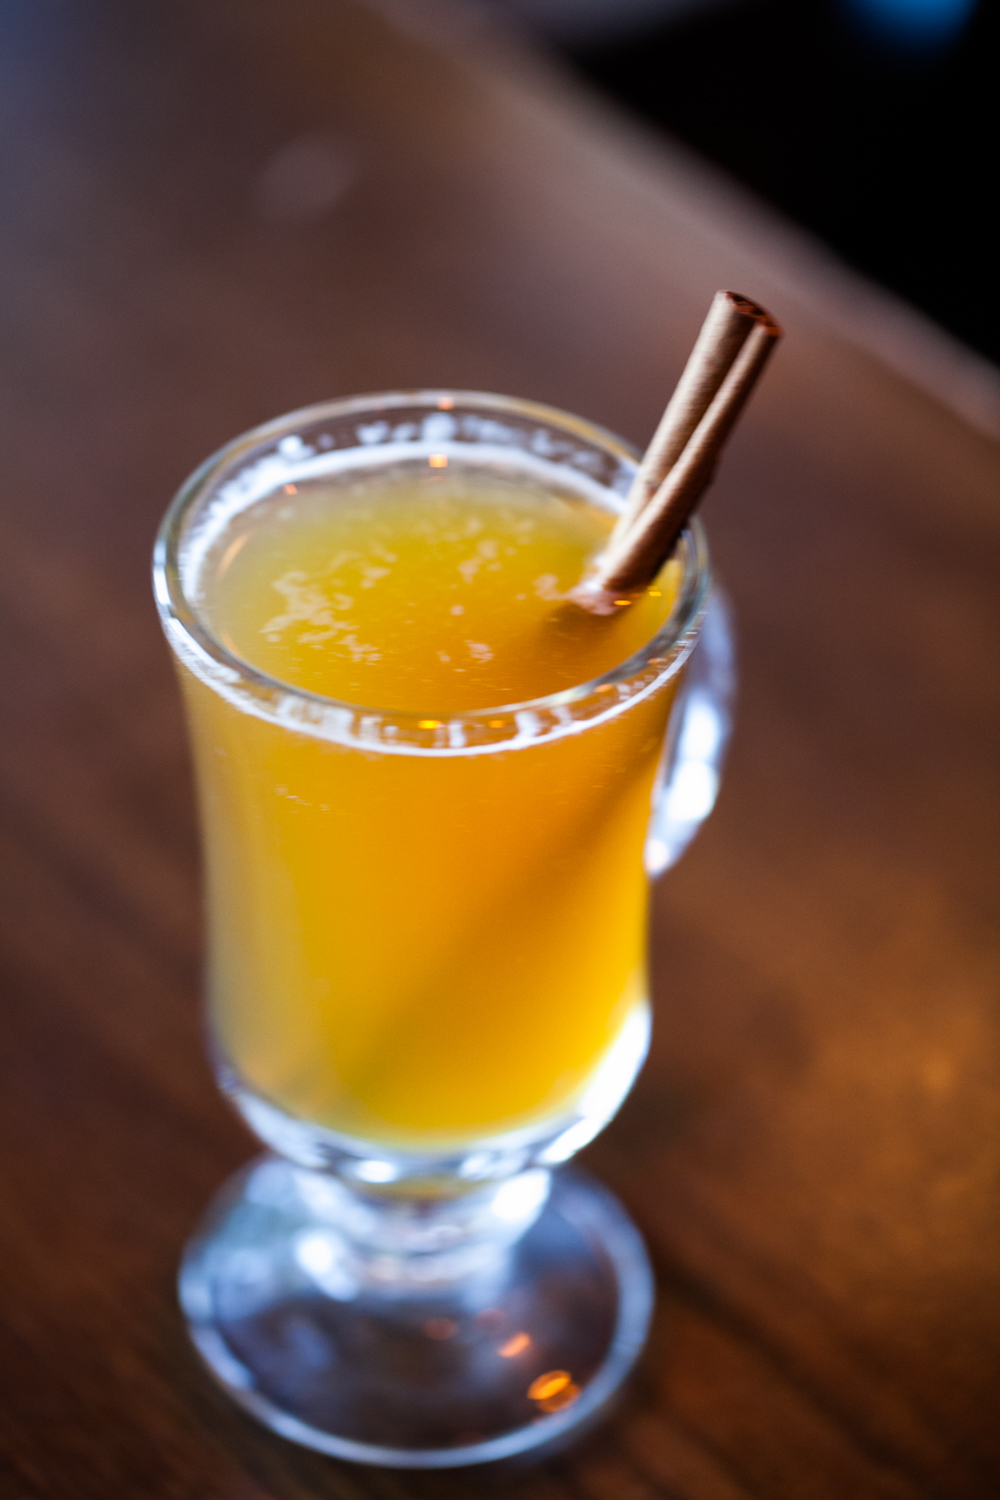 RJ Grunts' hot spiked cider with a cinnamon stick in the glass